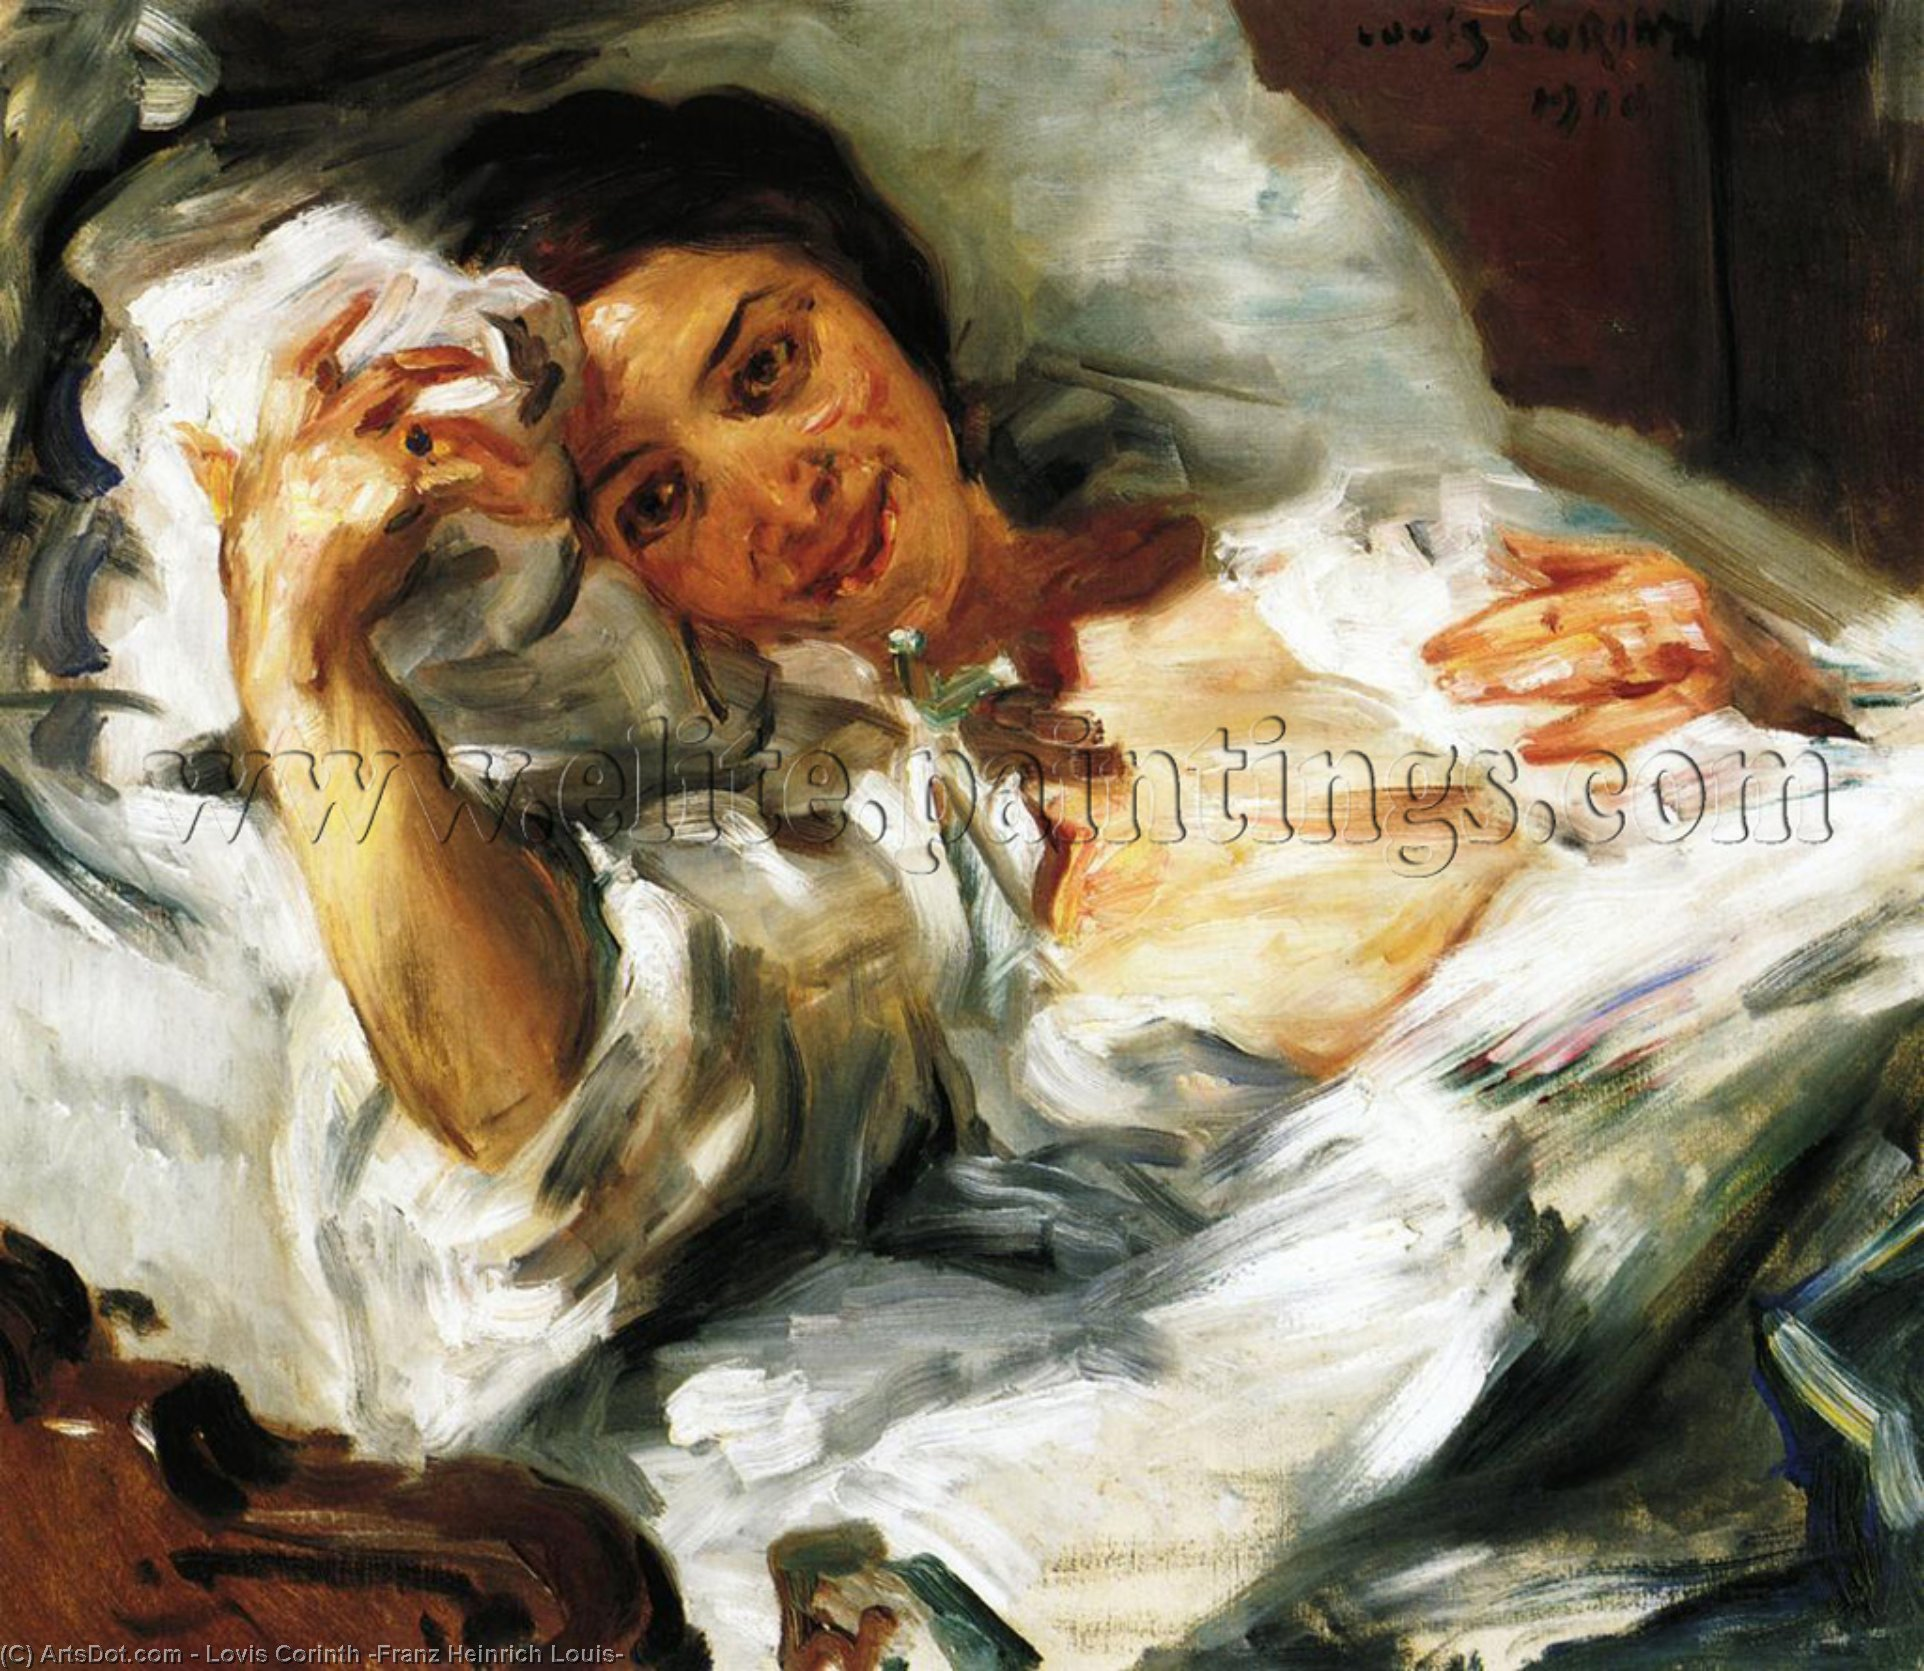 Morning Sun, Oil On Canvas by Lovis Corinth (Franz Heinrich Louis) (1858-1925, Netherlands)